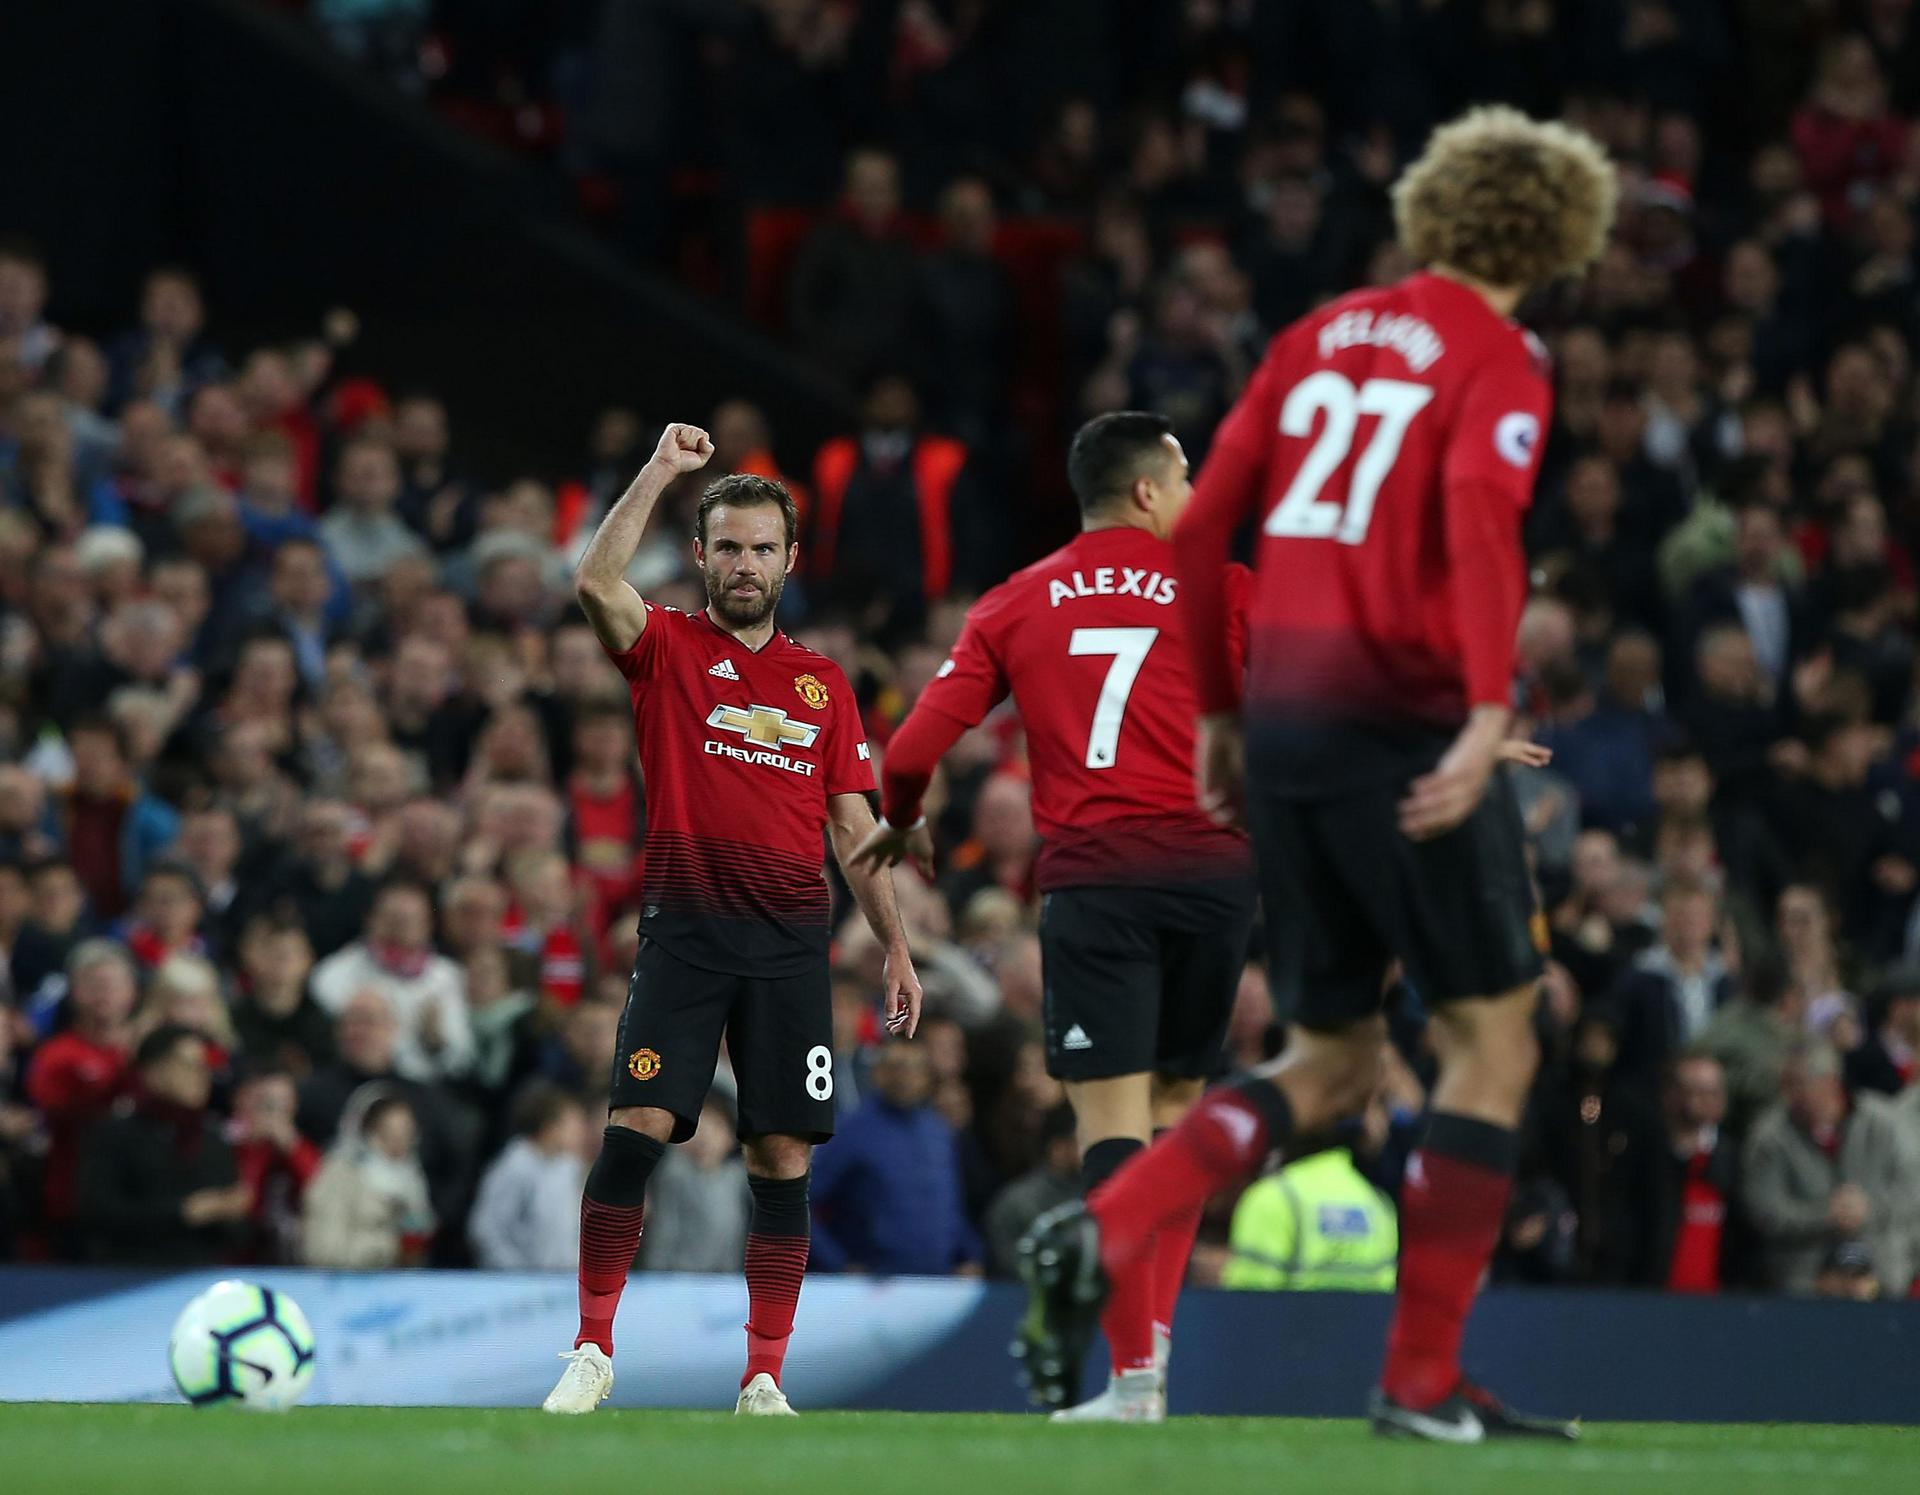 Juan Mata celebrates after scoring against Newcastle